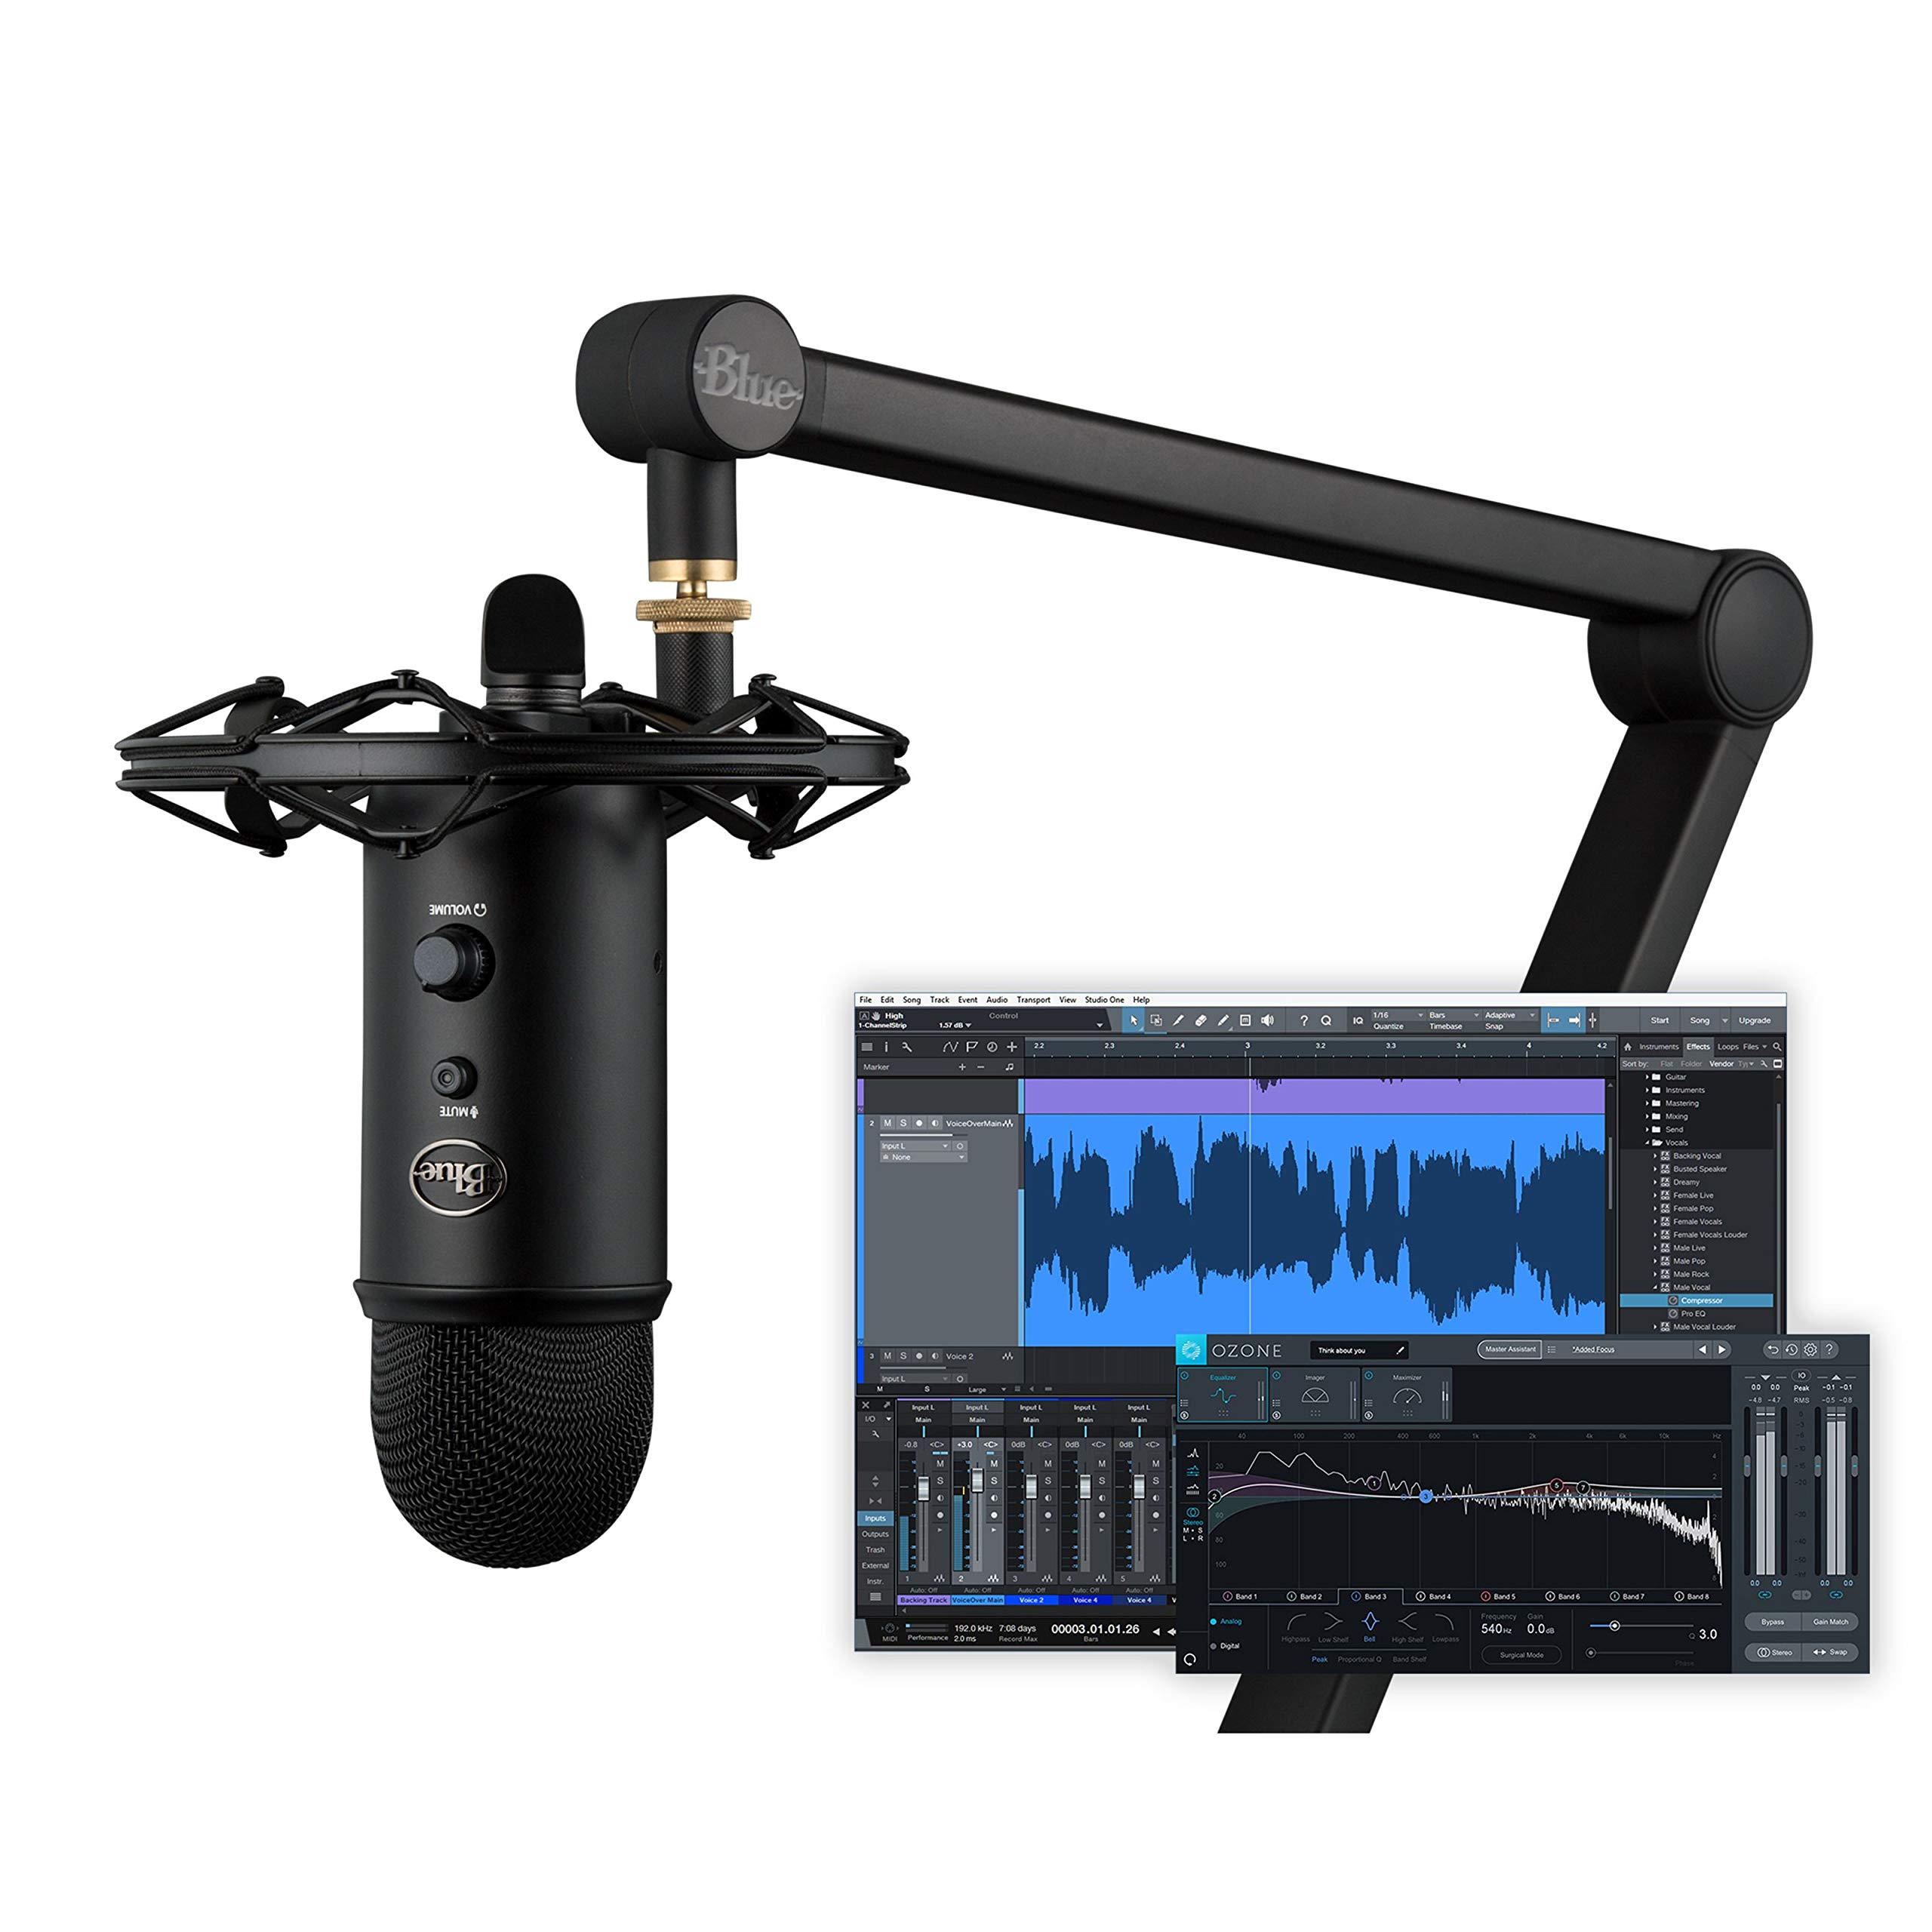 Blue Yeticaster Studio Blackout bundled with Yeti Blackout, Radius III shockmount, Compass broadcast boom arm and Multi-Track Recording-Mastering Software